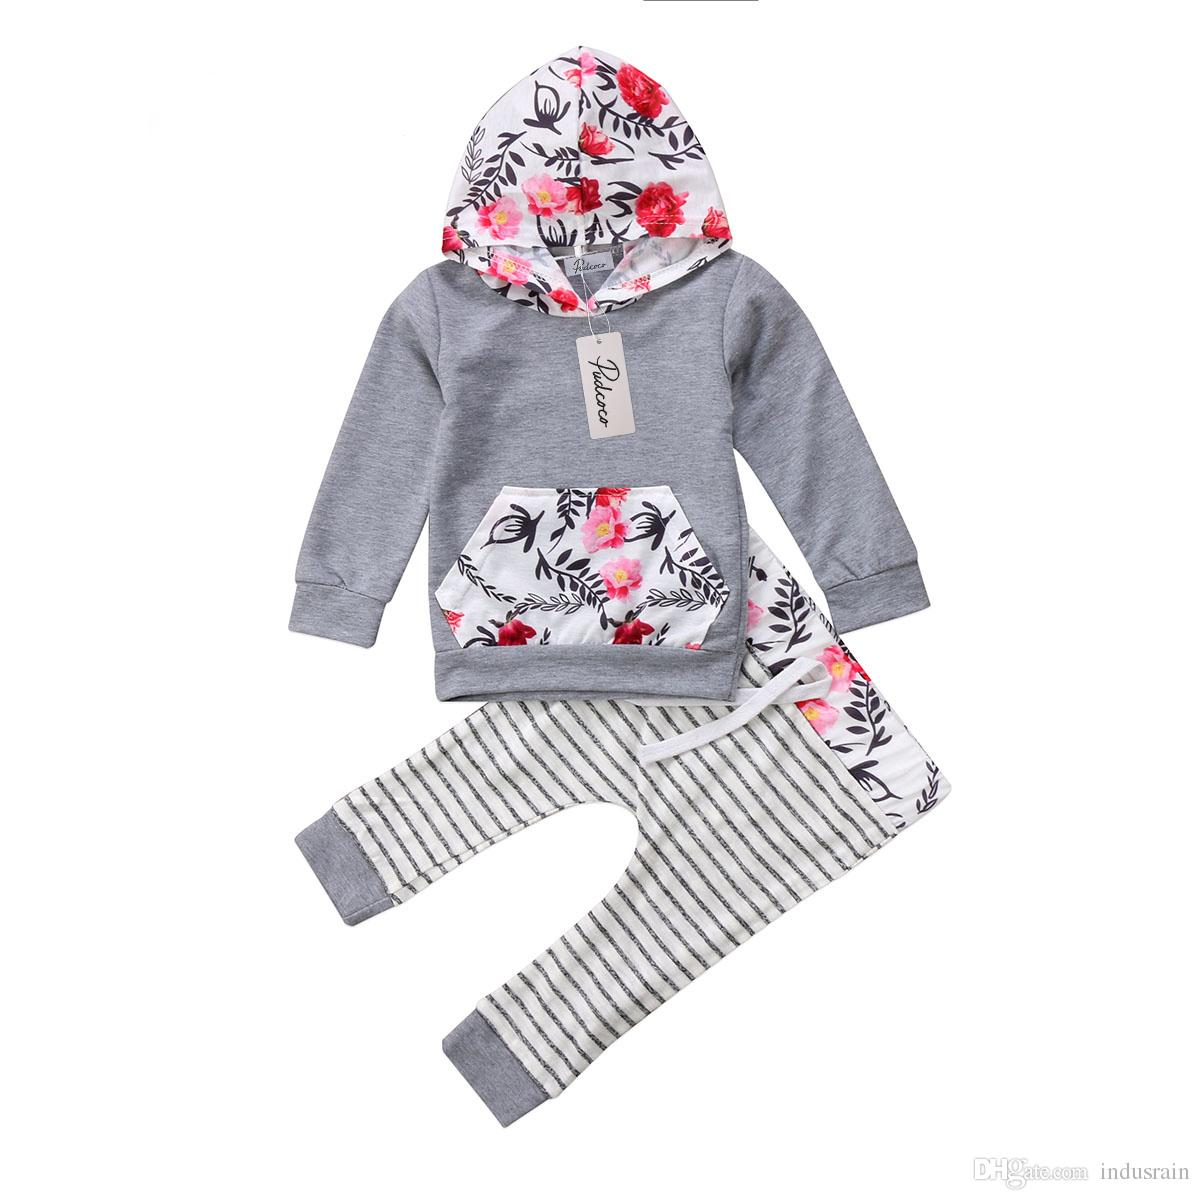 a5f94164 Spring Autumn Baby Clothing Toddler Boys Girls Hooded Floral Tops Sweatshirt  Striped Pants Clothes Outfit Set 0-18M Online with $17.49/Piece on  Indusrain's ...